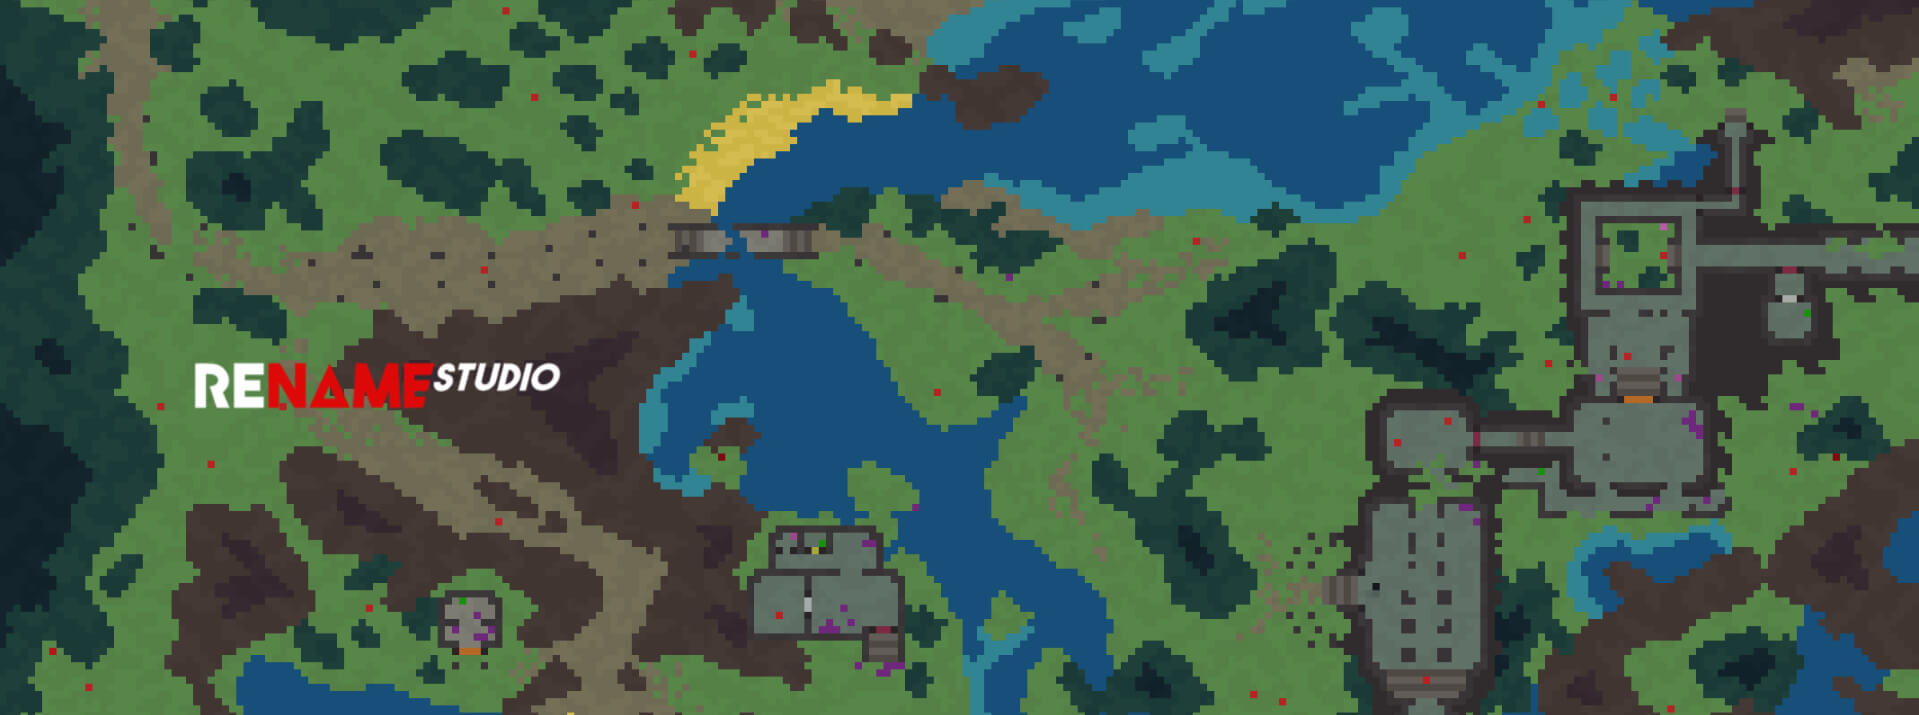 Alt254 is a Zelda-style adventure game that takes minimalist graphics to the extreme thumbnail